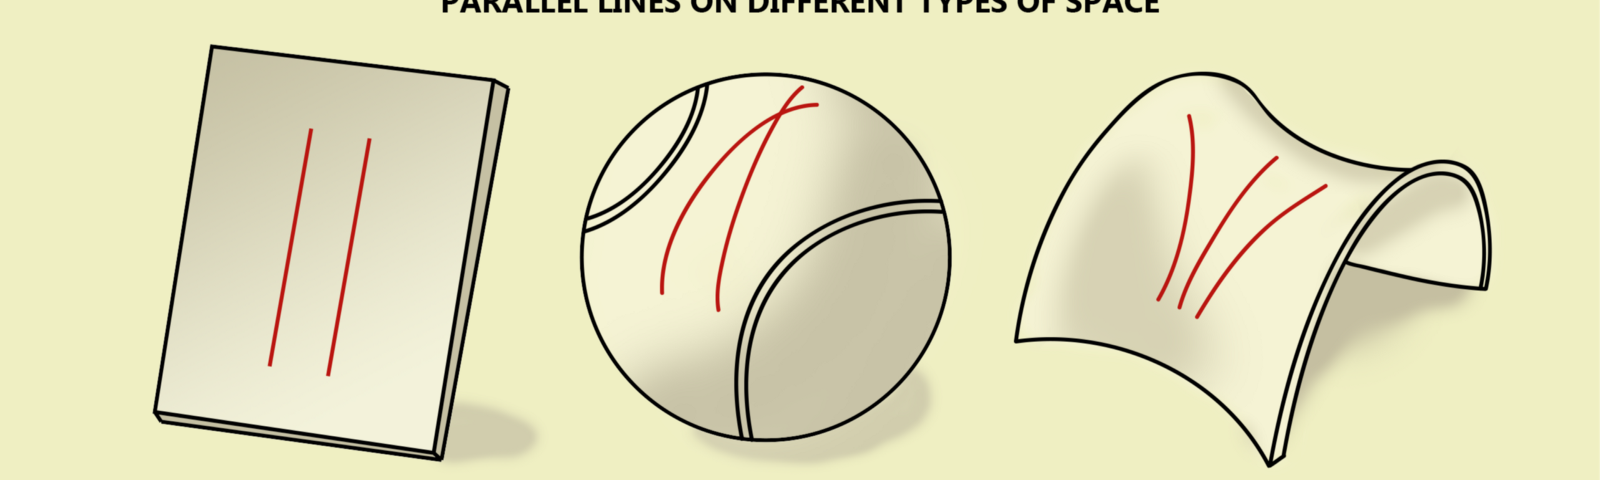 How parallel lines look like on different types of space